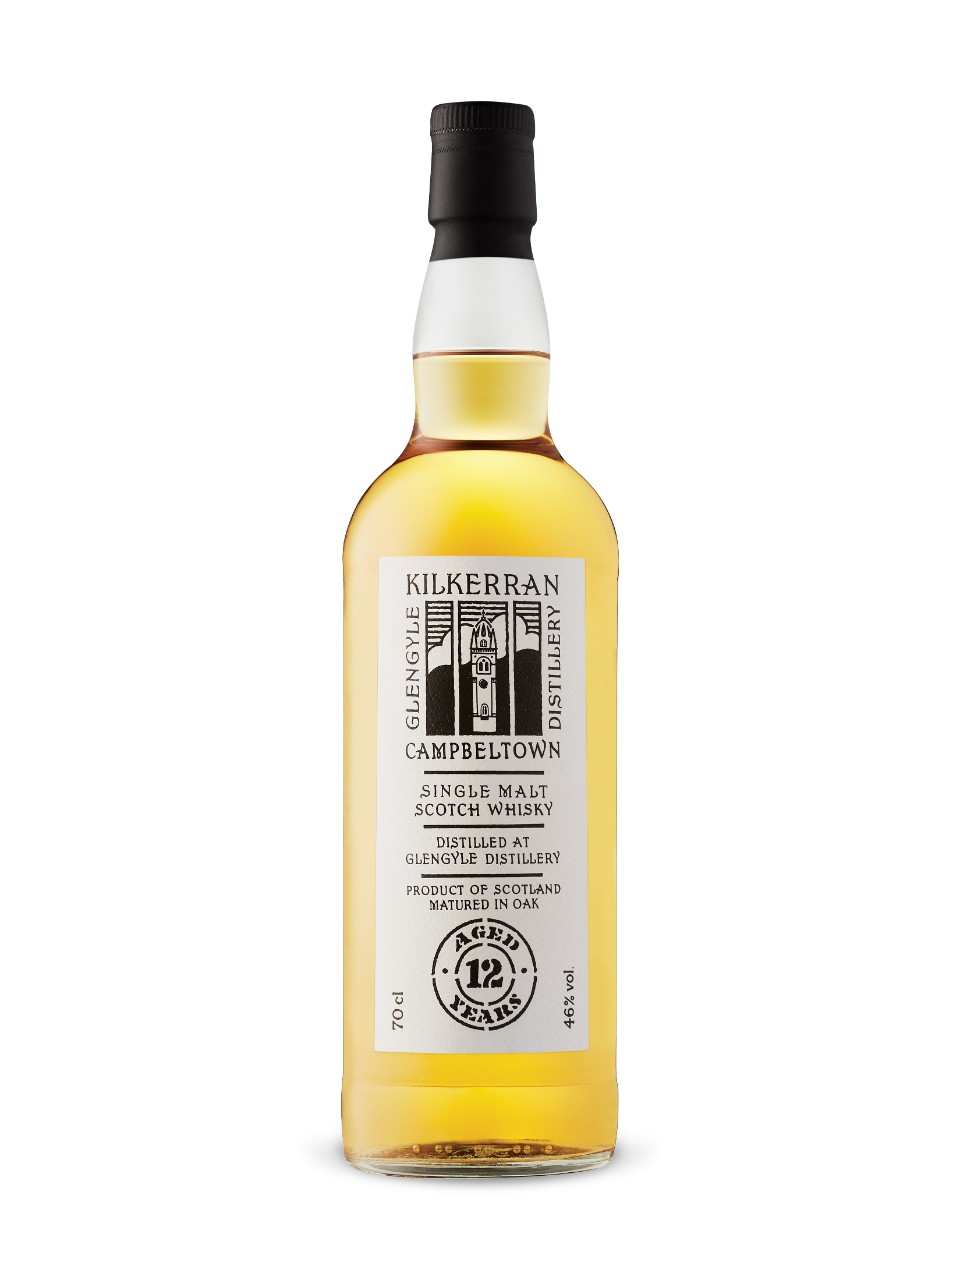 Kilkerran 12-Year-Old Campbeltown Single Malt Scotch Whisky